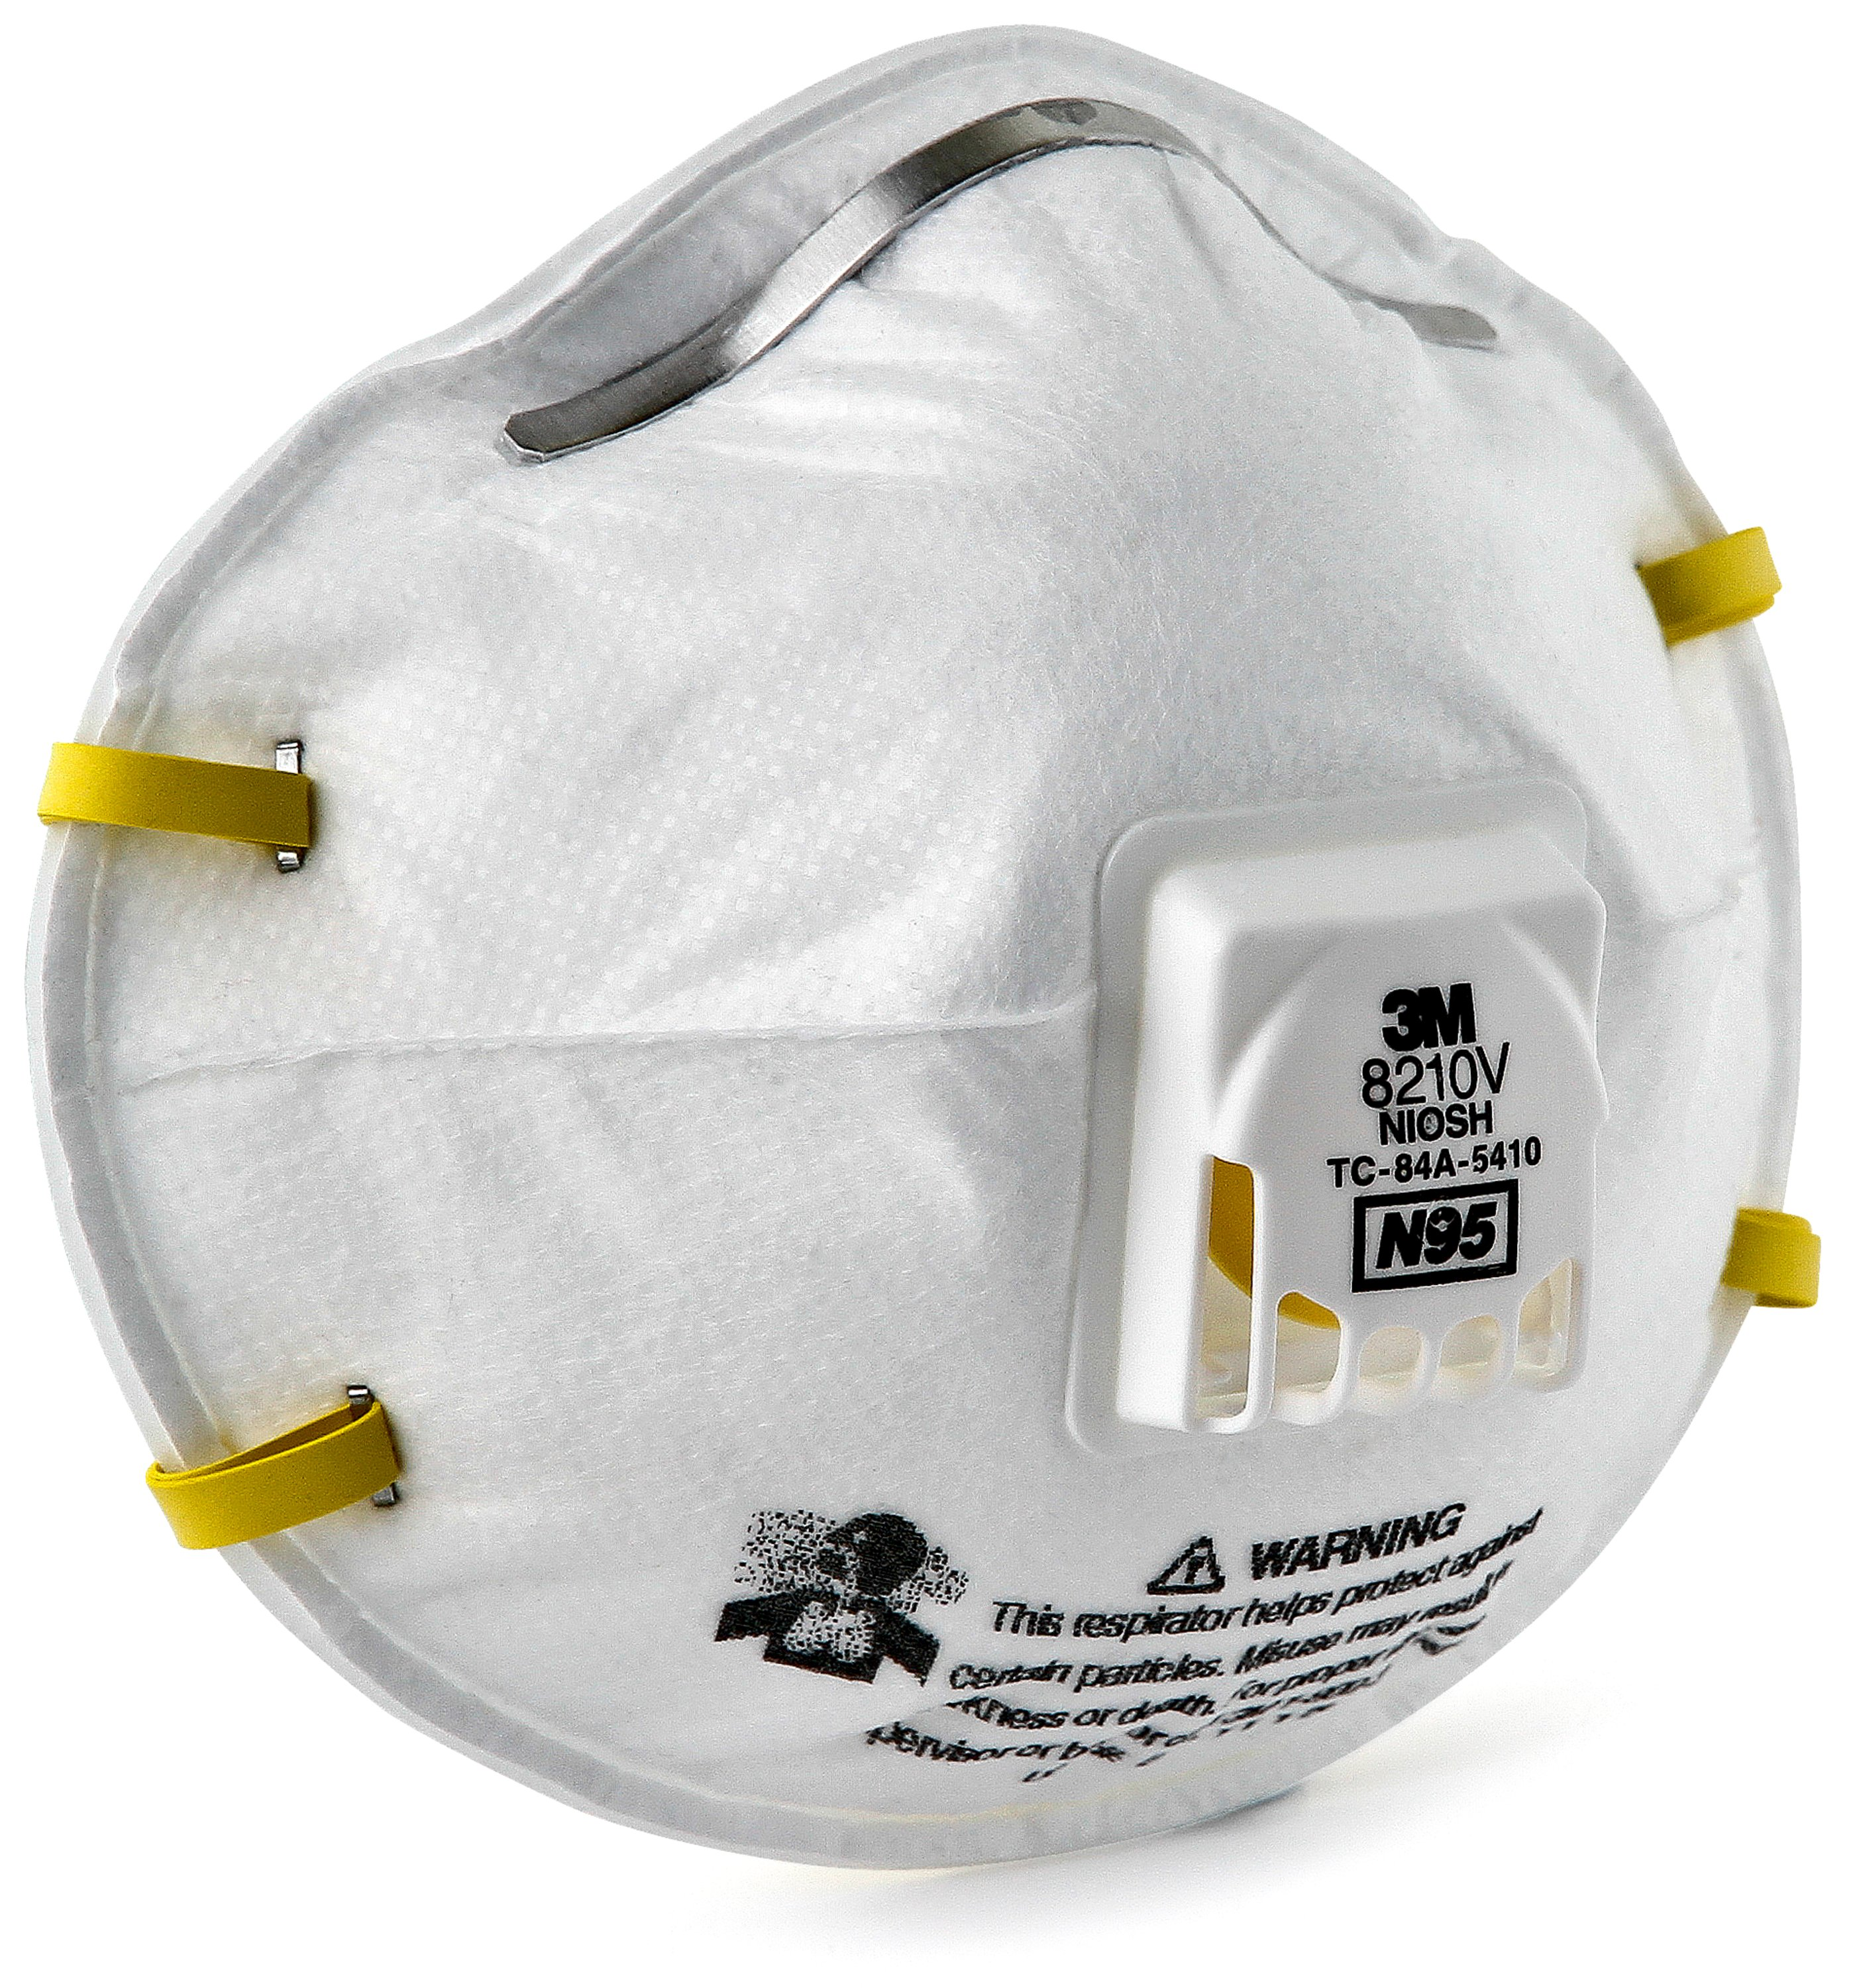 3M™ 8210V Cup Style Standard Disposable Particulate Respirator, Resists: Non-Oil Based Particles